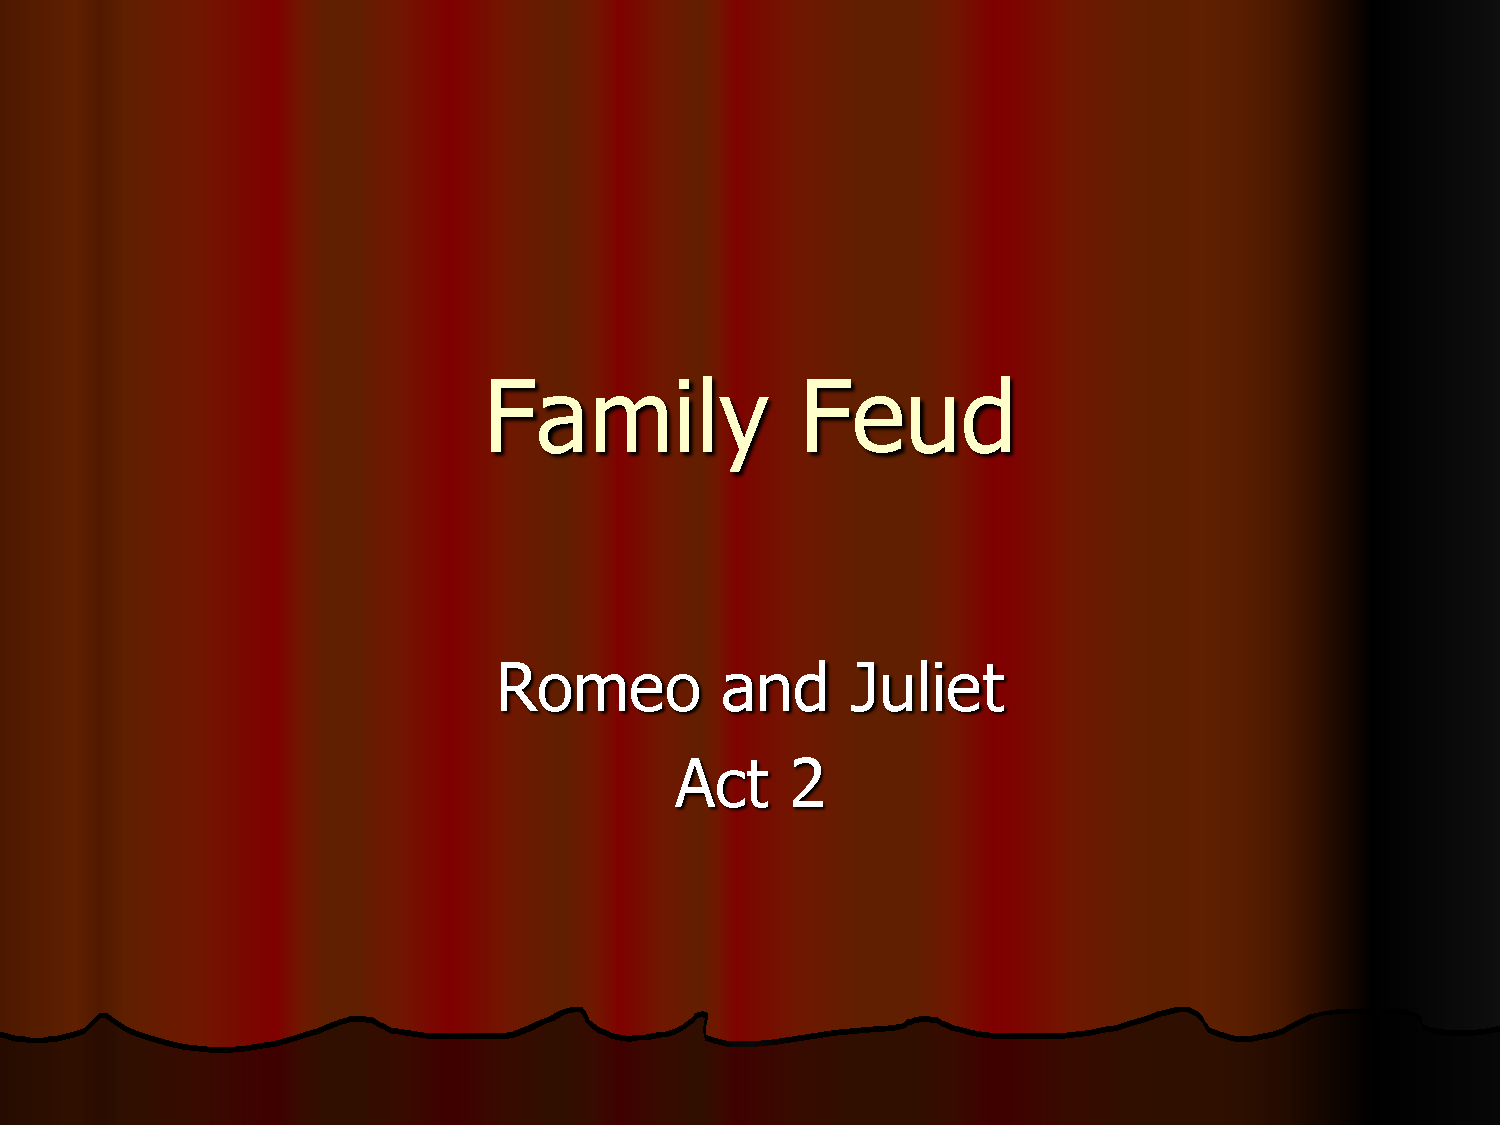 romeo and juliet foreshadowing William shakespeare employed numerous narrative techniques in romeo and juliet from foreshadowing to monologues to dramatic irony, the entire narrative is compact and effective.